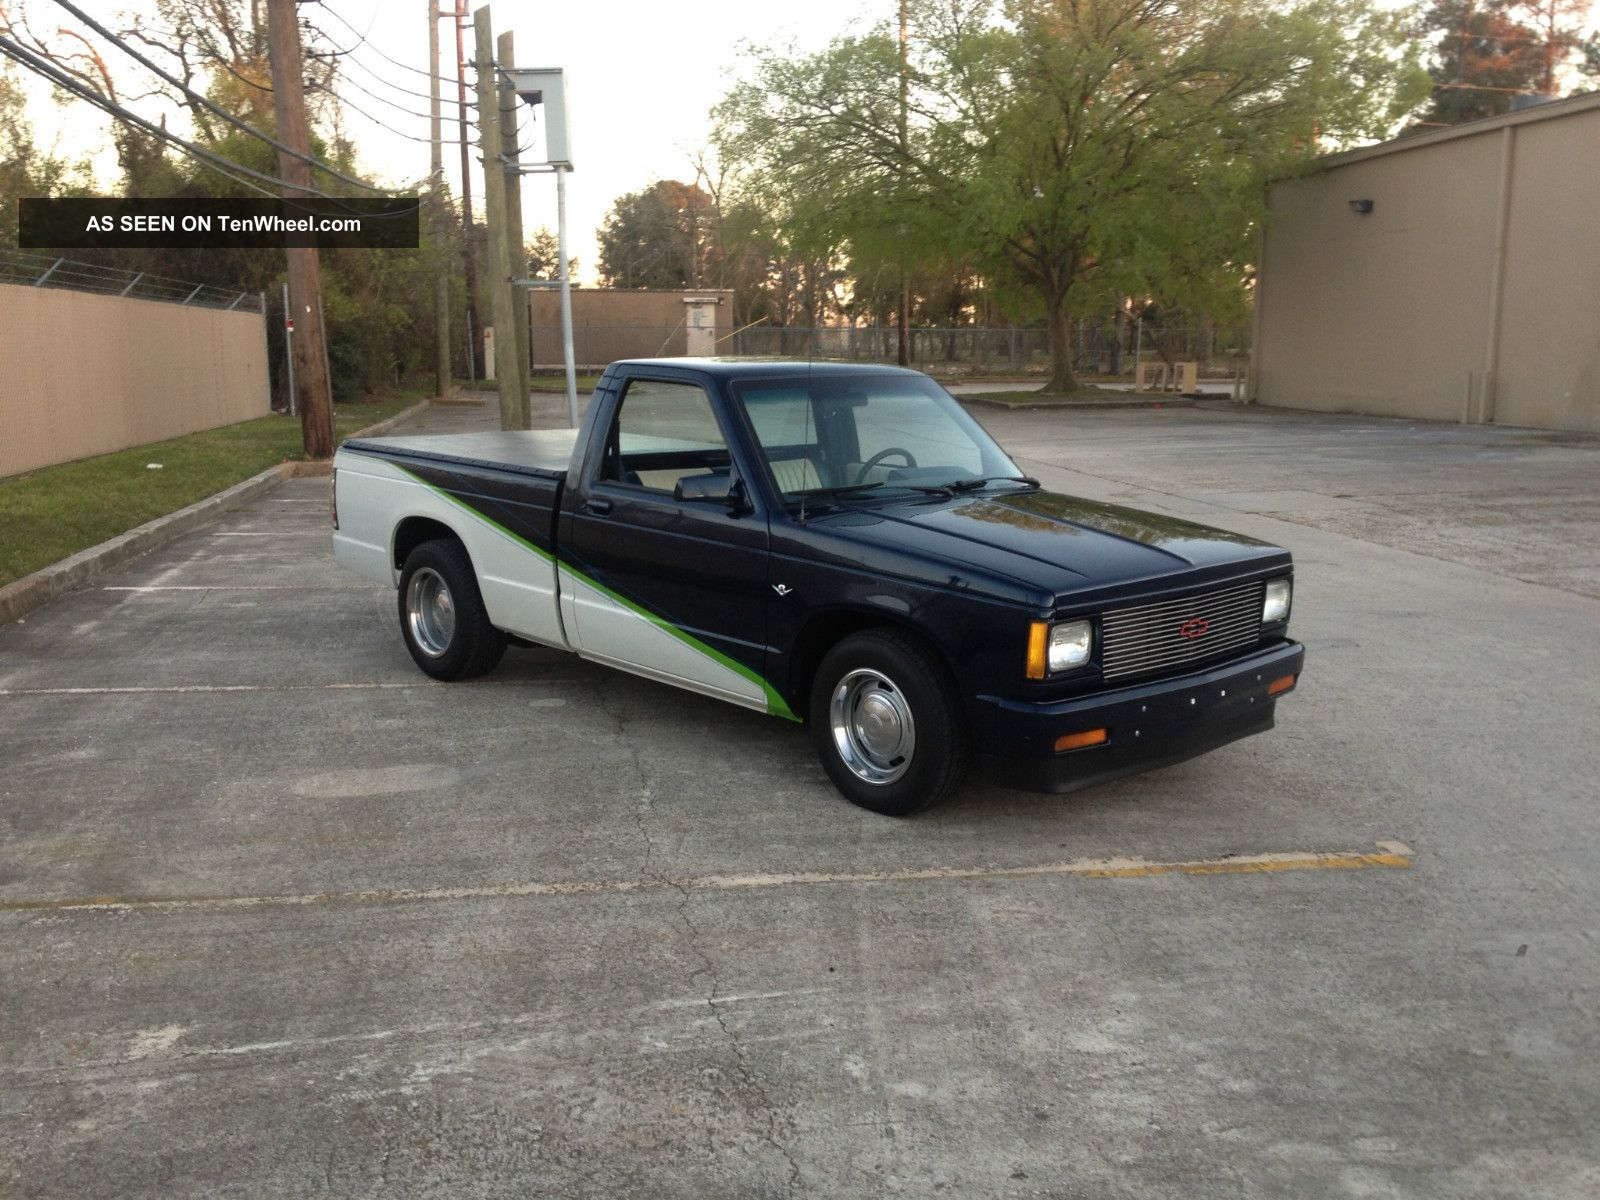 S10 pick up for sale additionally 1983 chevy el camino on s10 body